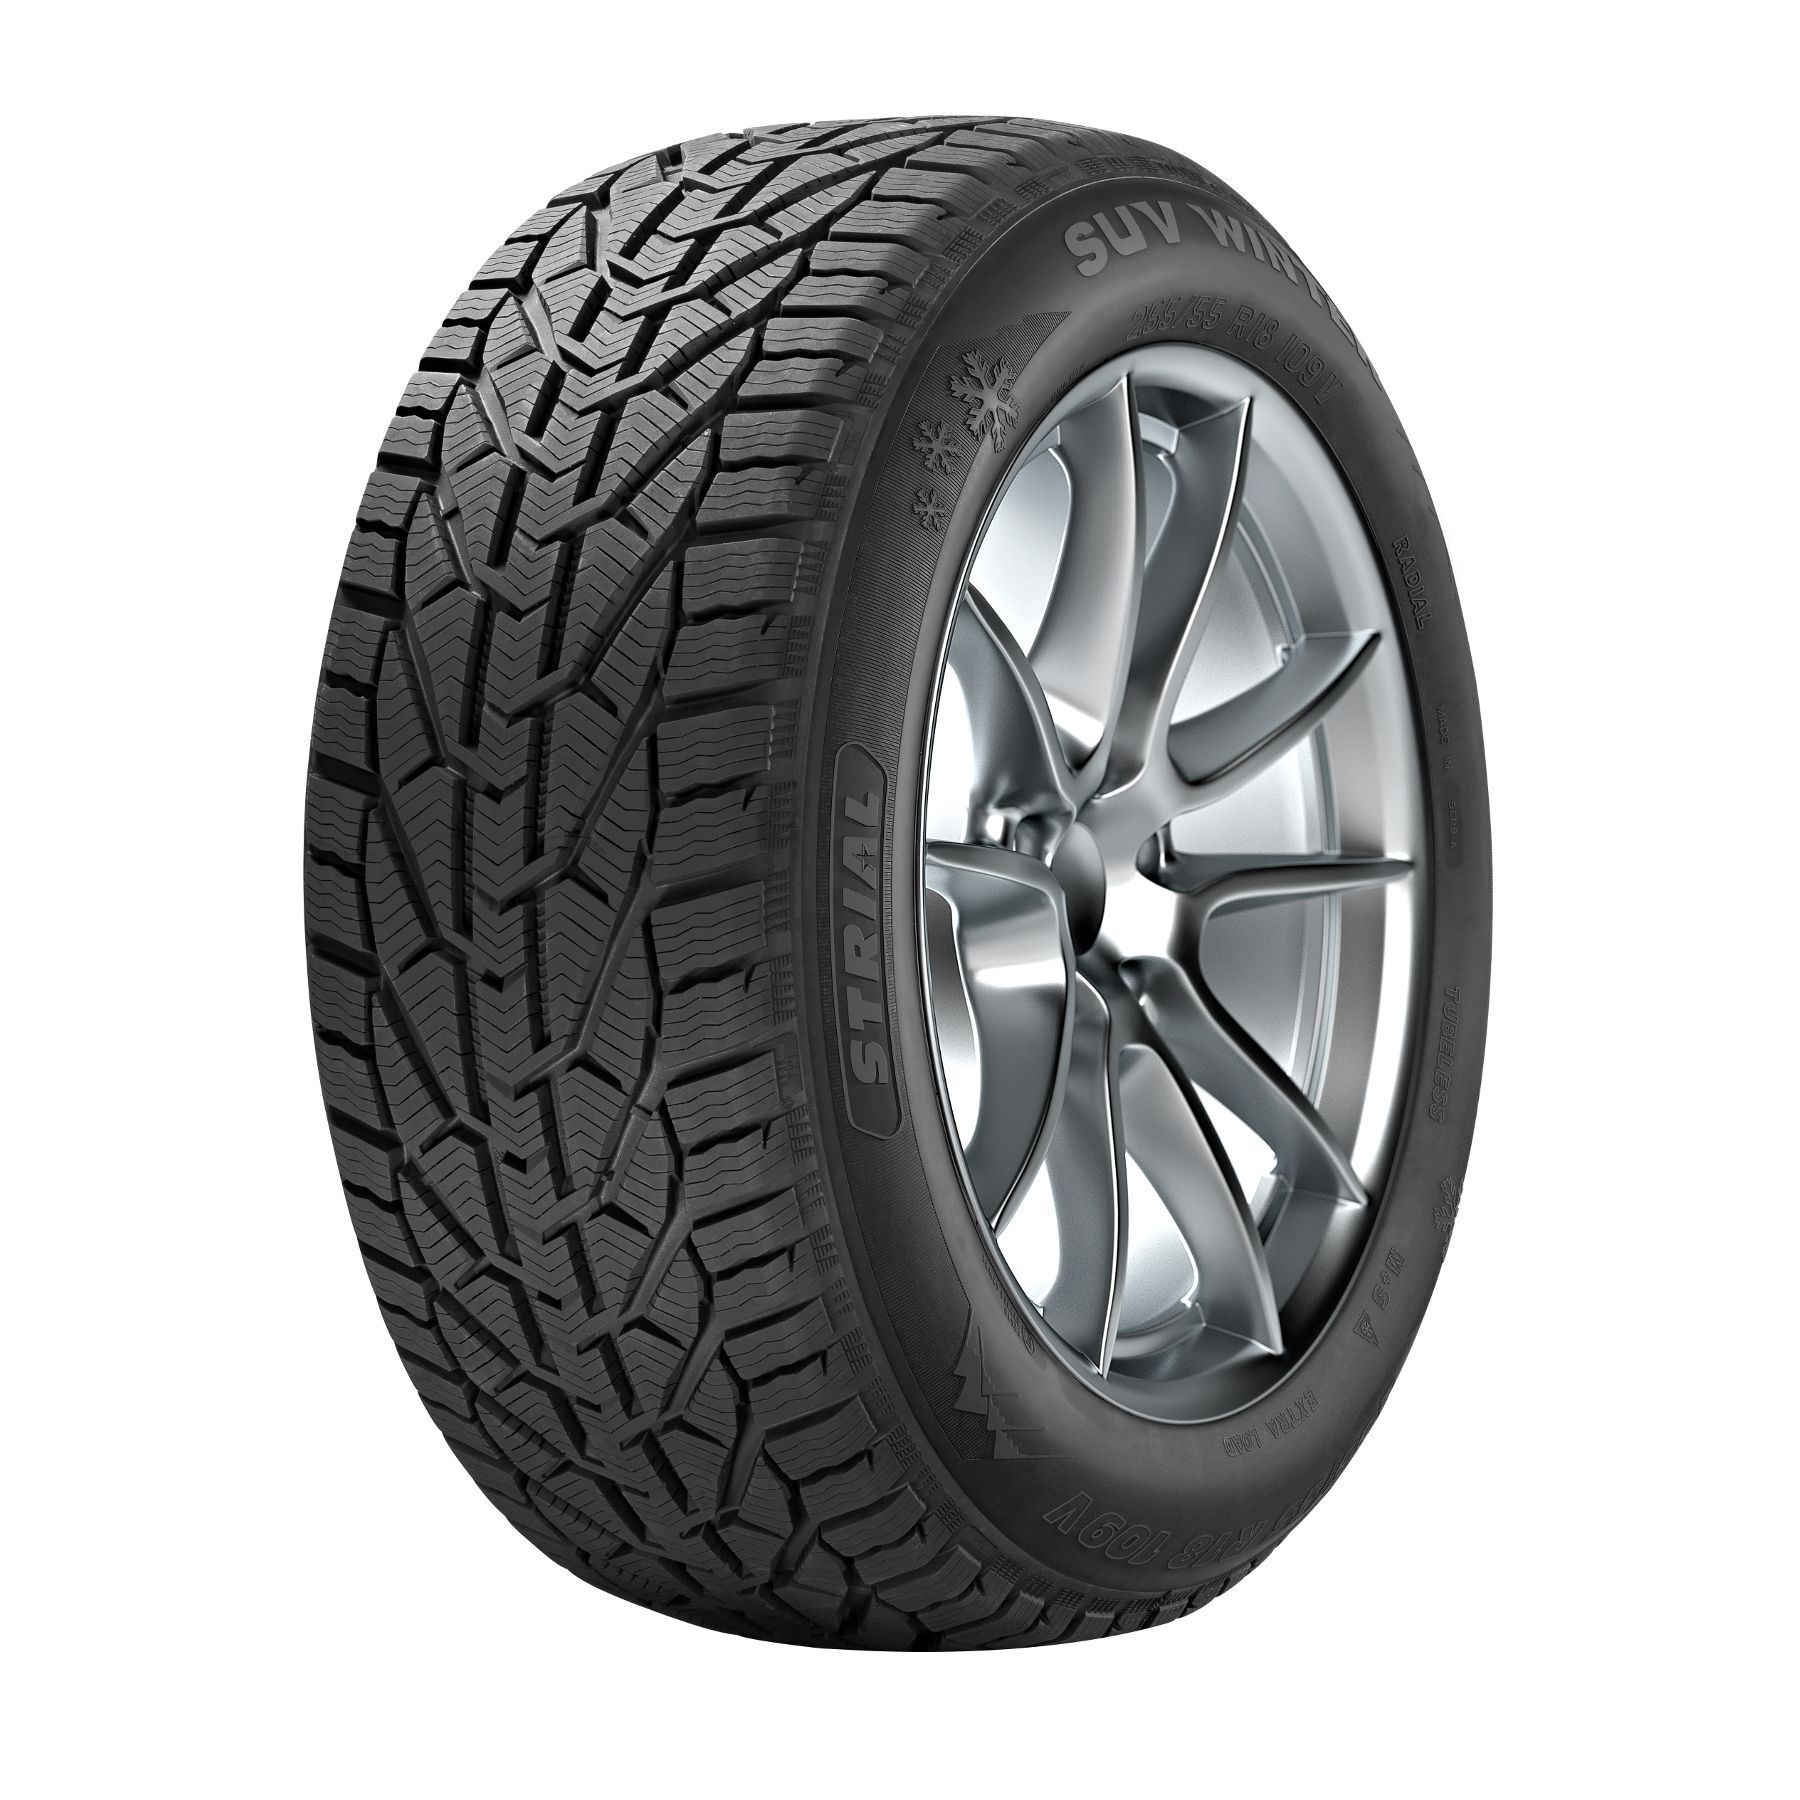 Anvelopa 205/50 R17 (Winter) Tigar iarna